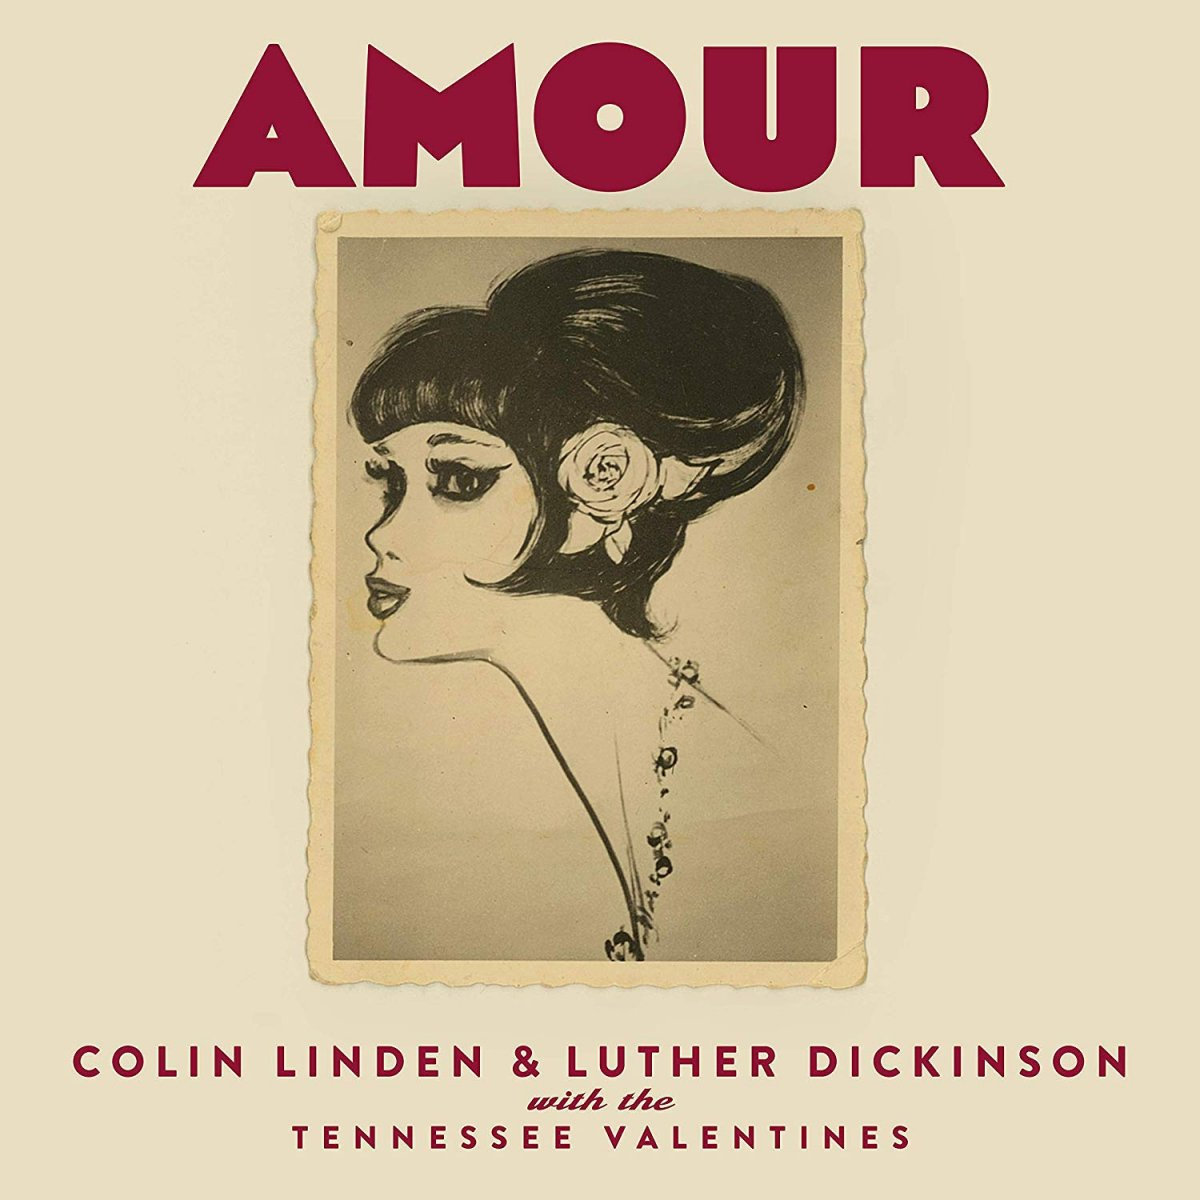 Colin Linden And Luther Dickinson - Amour